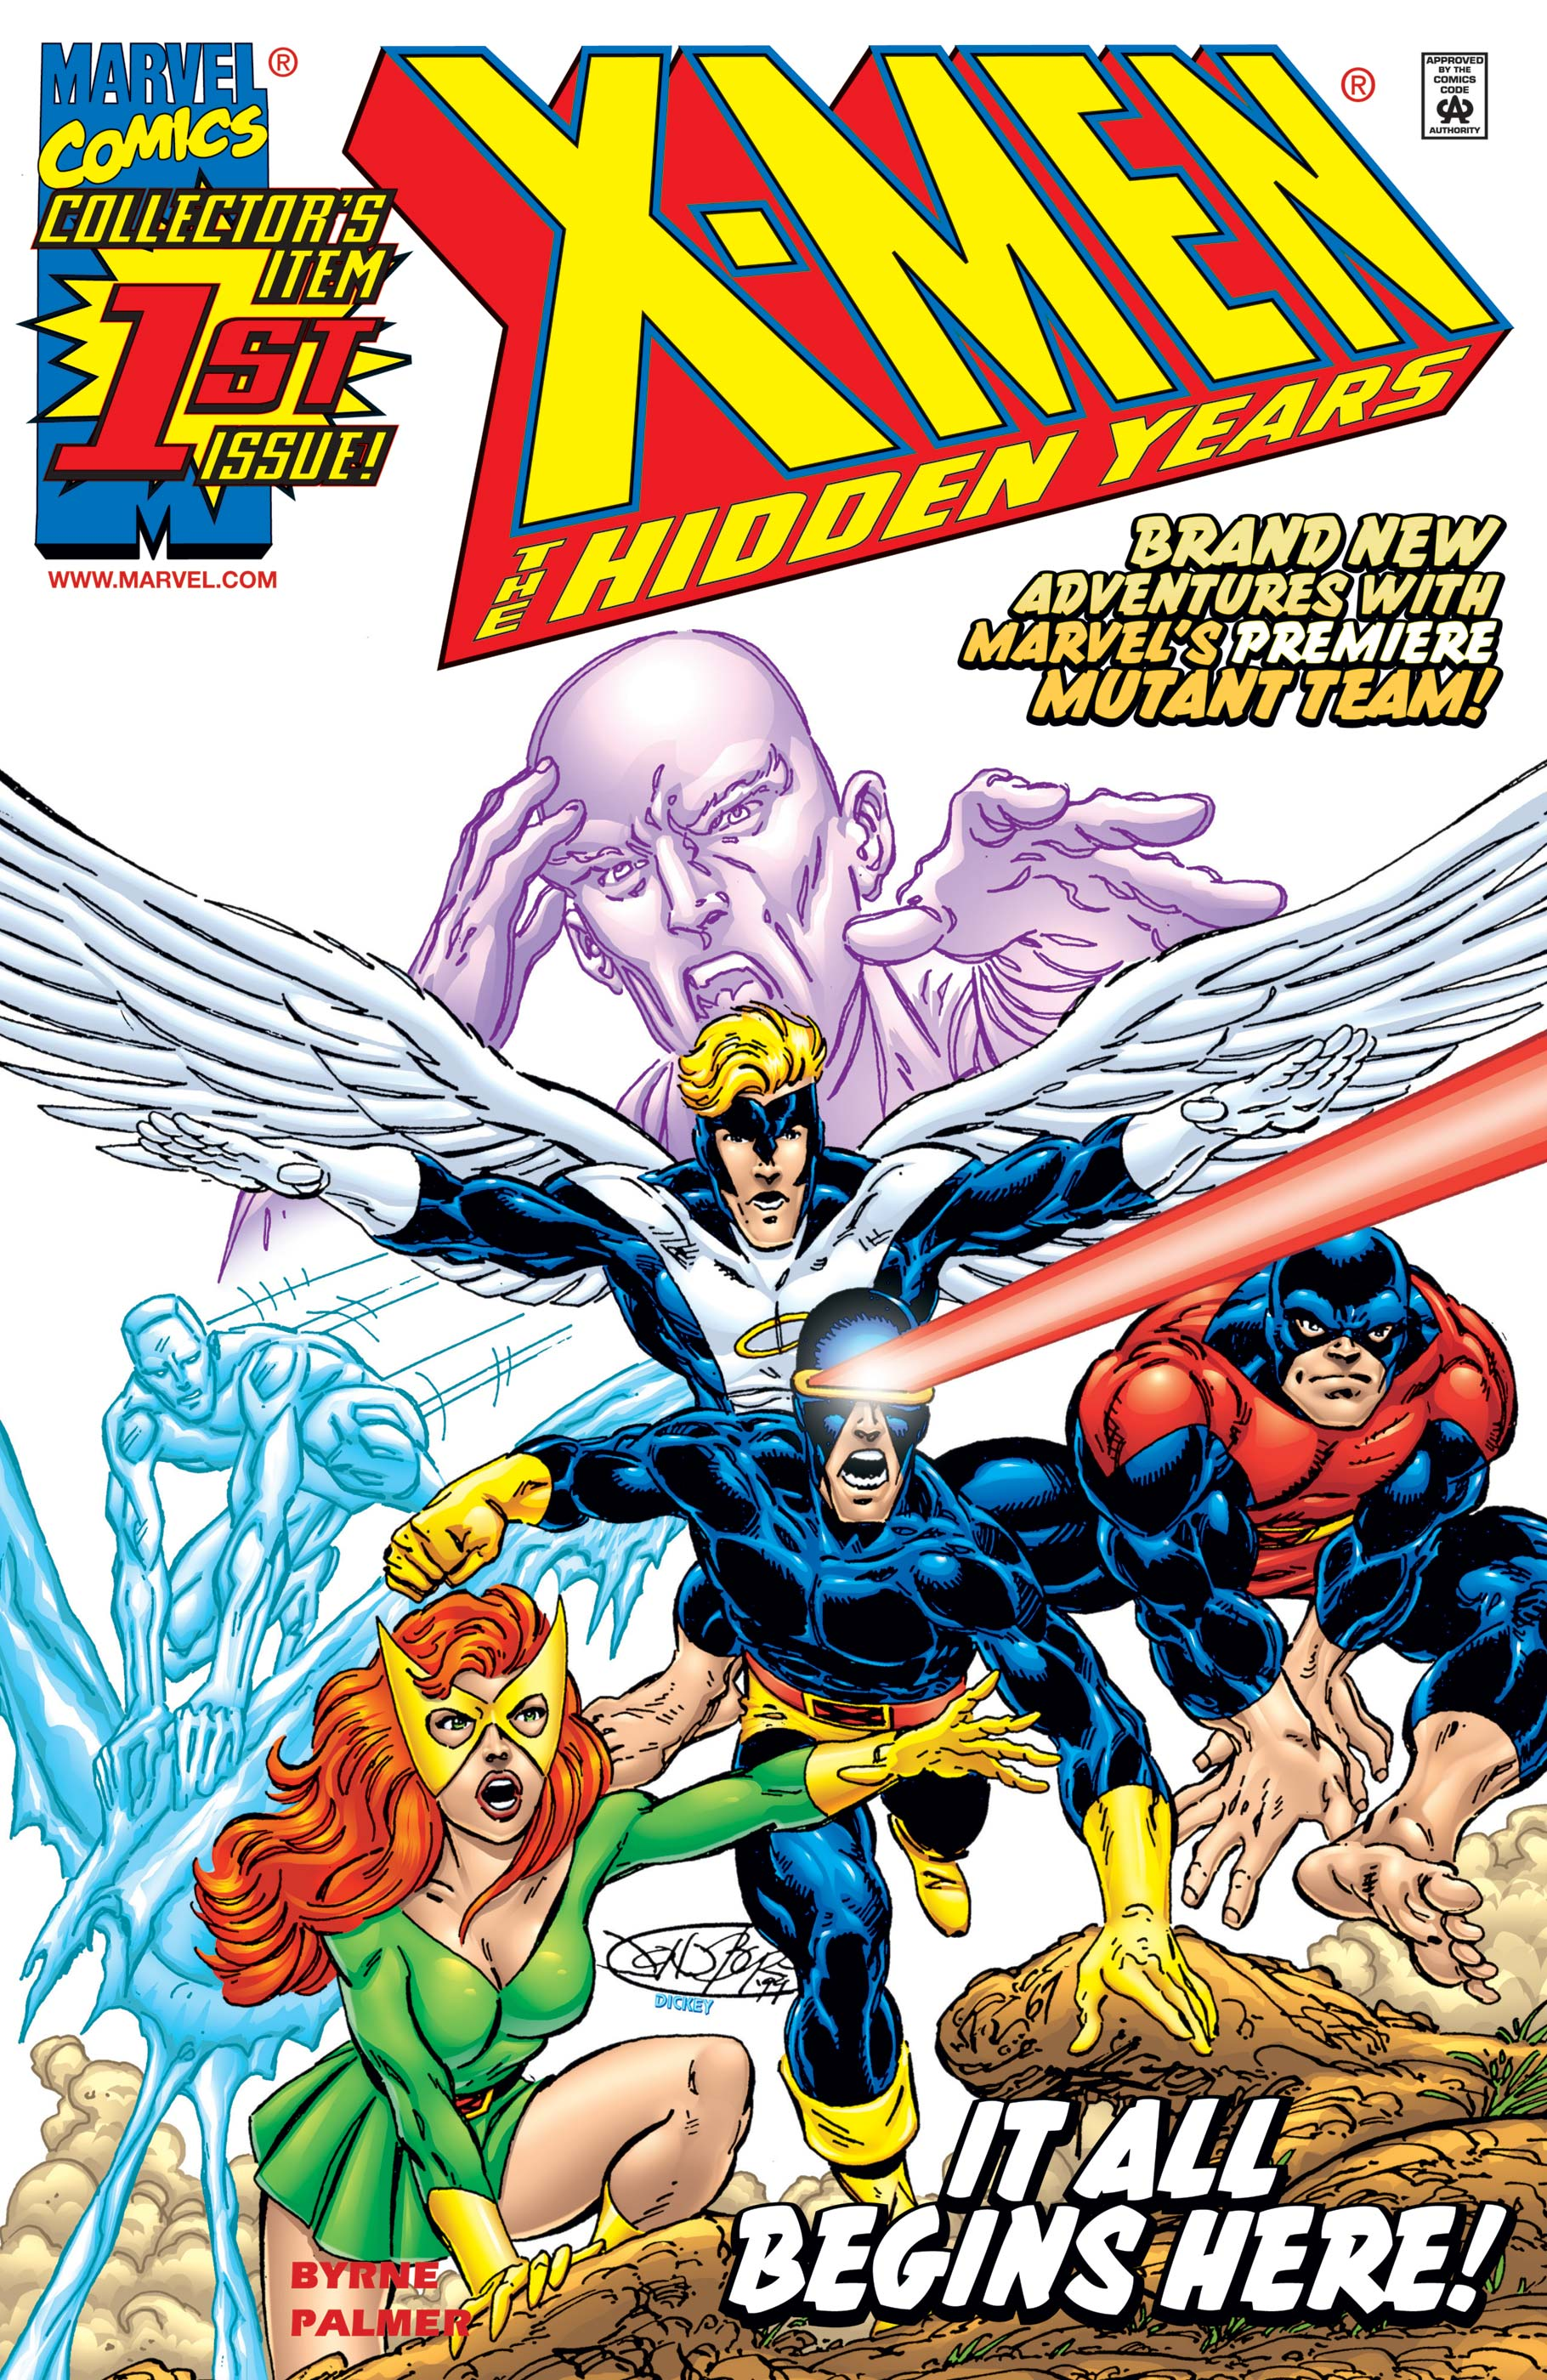 X-Men: The Hidden Years (1999) #1